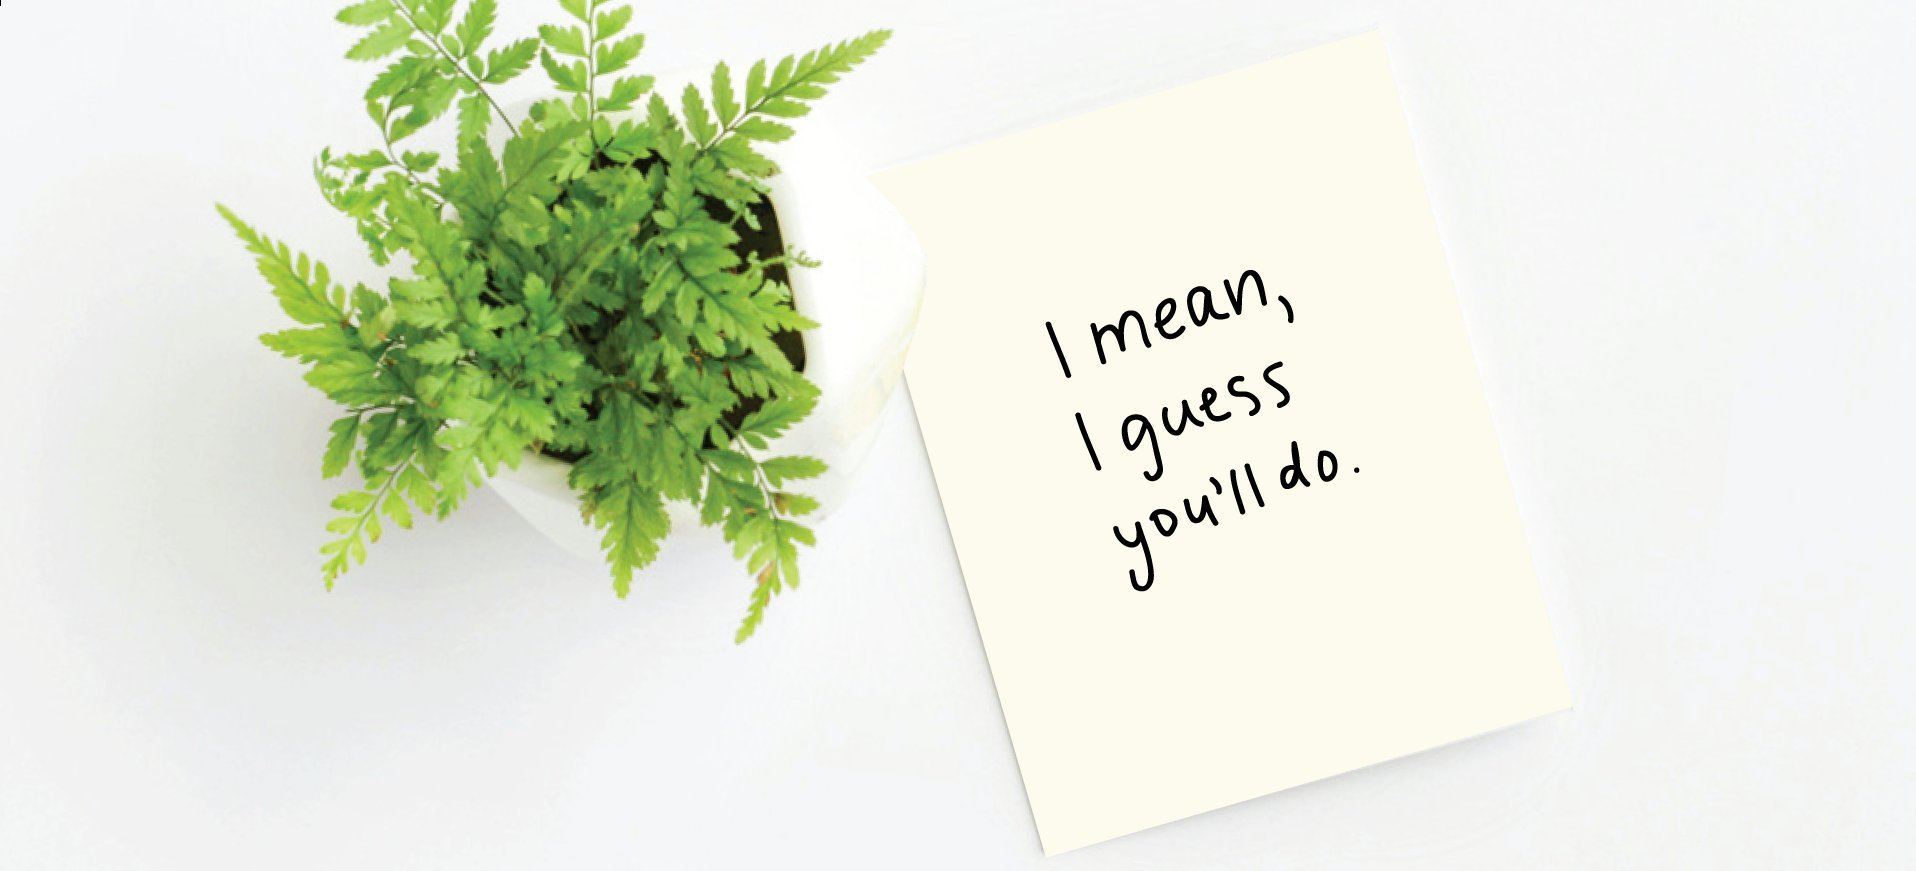 Sympathy and support card